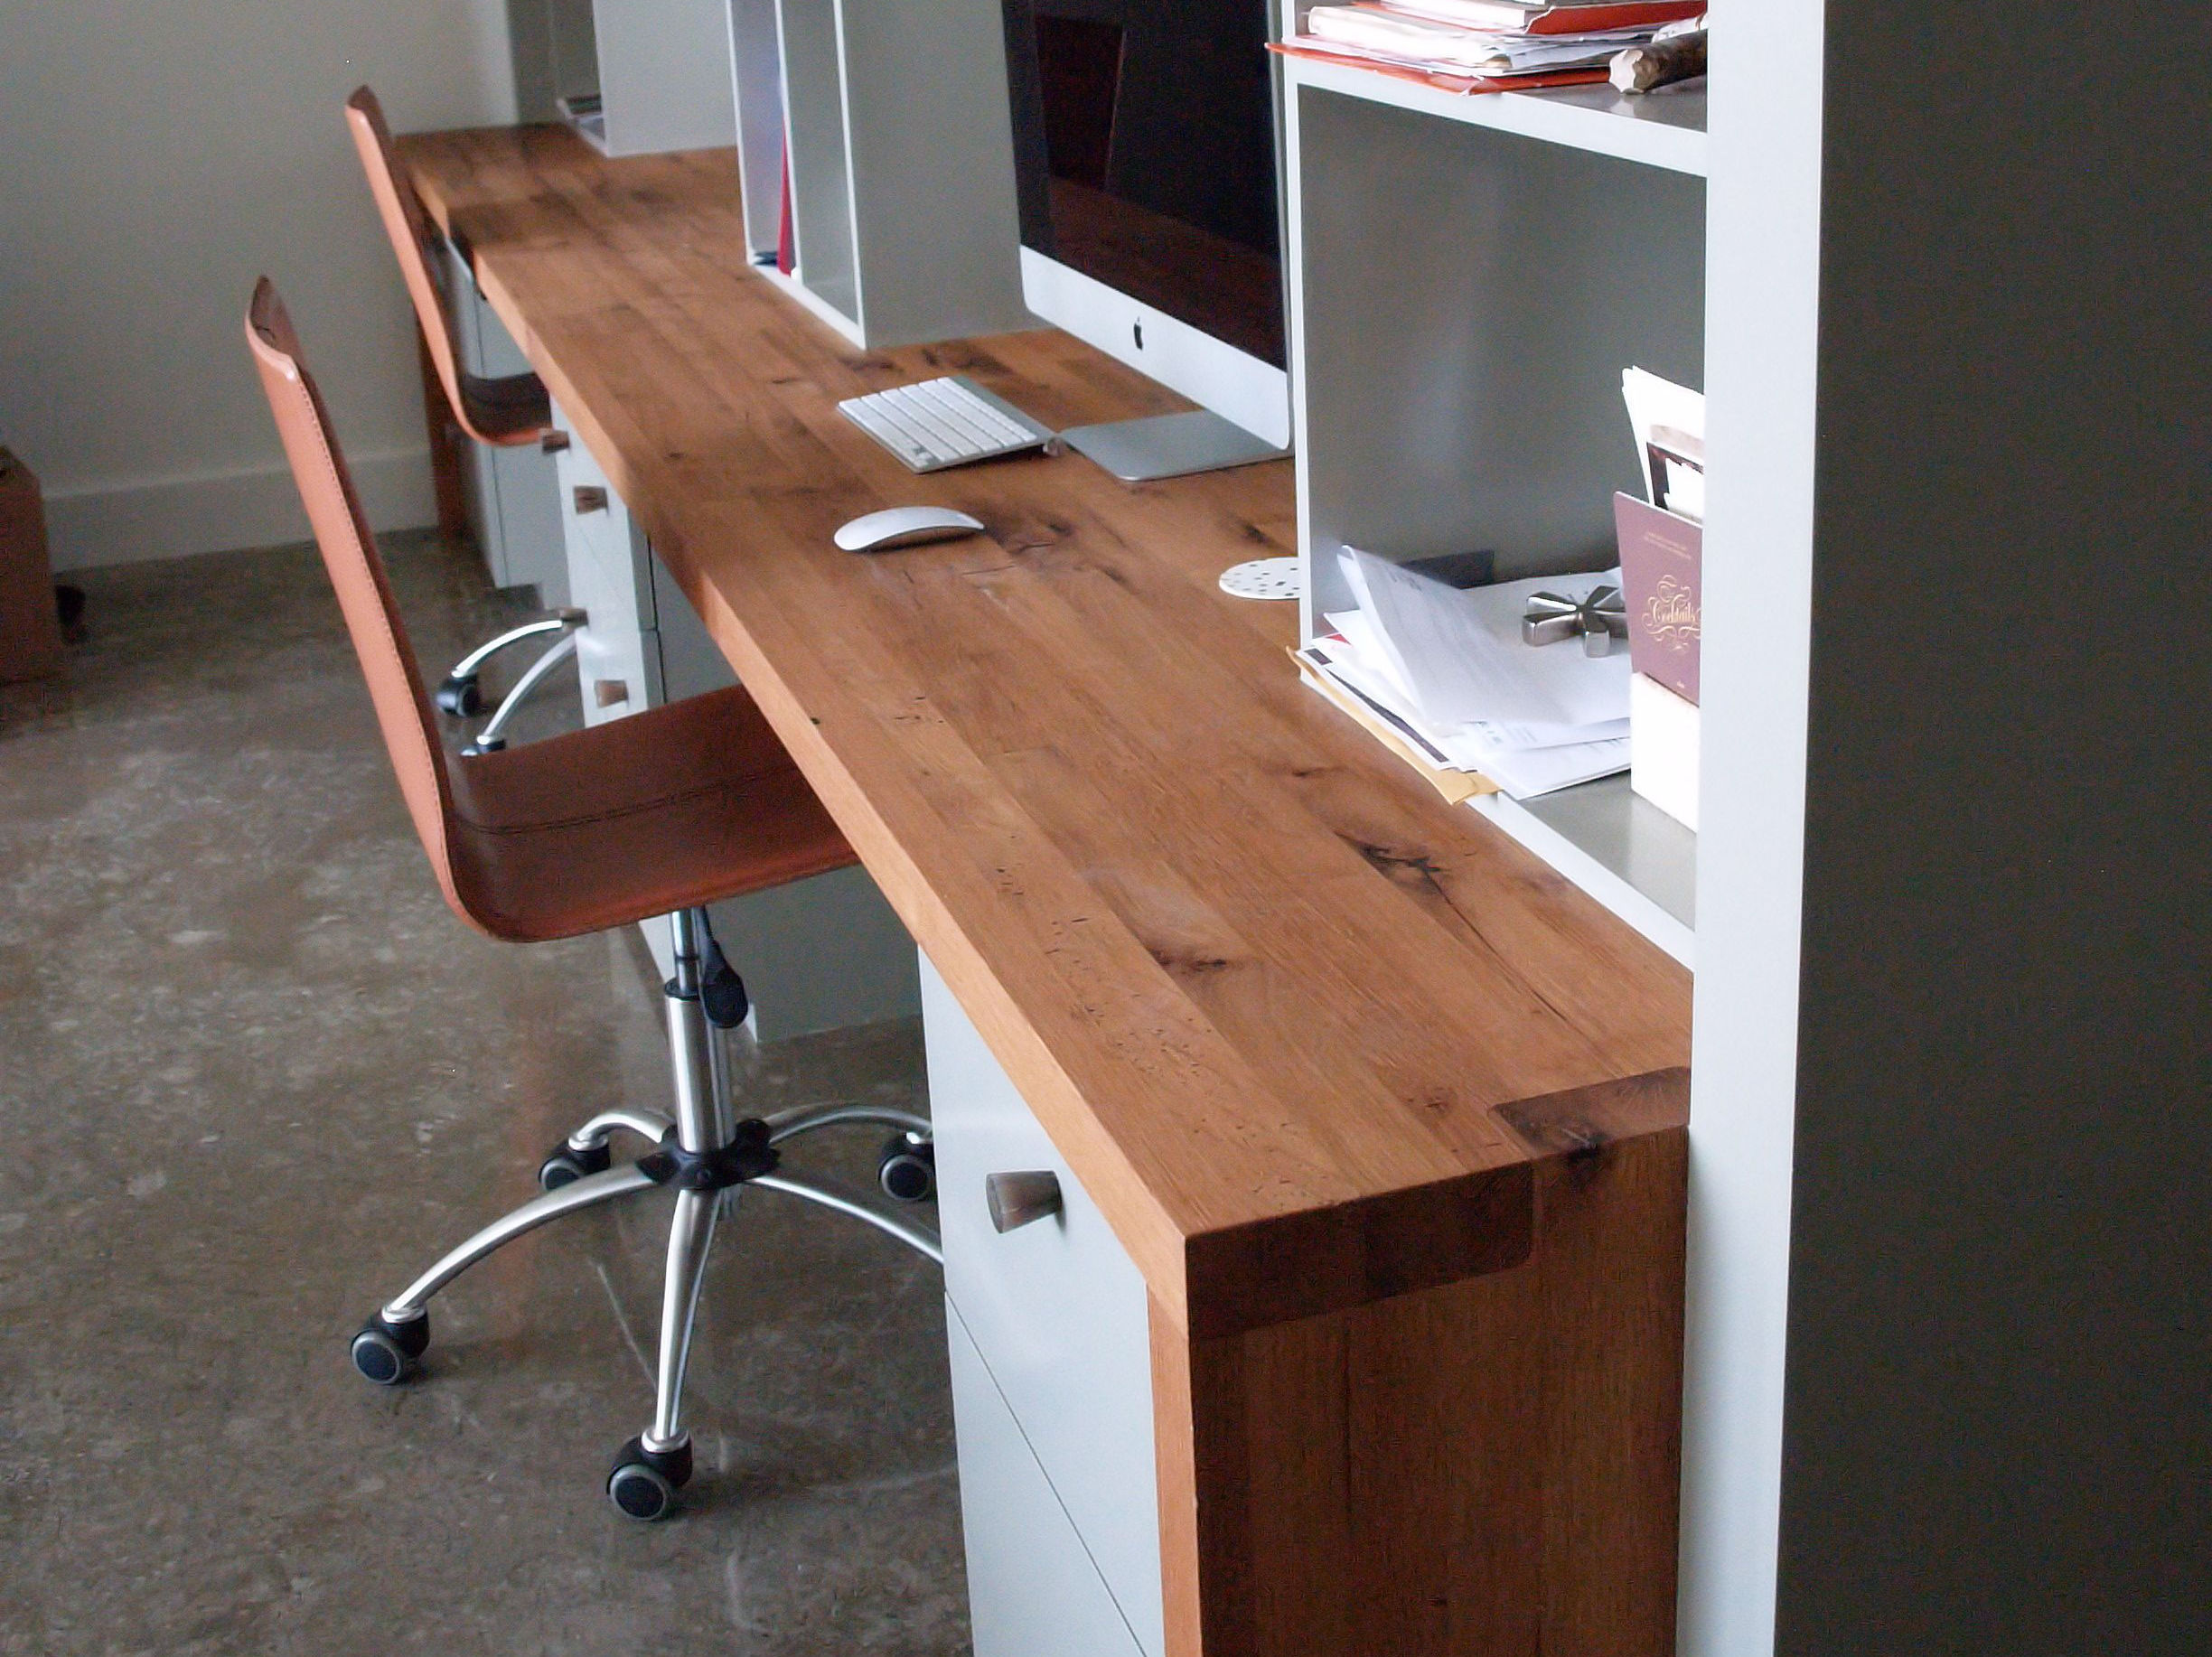 Reclaimed White Oak custom wood desk with DeVos Puzzle Joint along the length.  Finger Joint ends with Waterfall return to the floor and Tung-Oil finish.